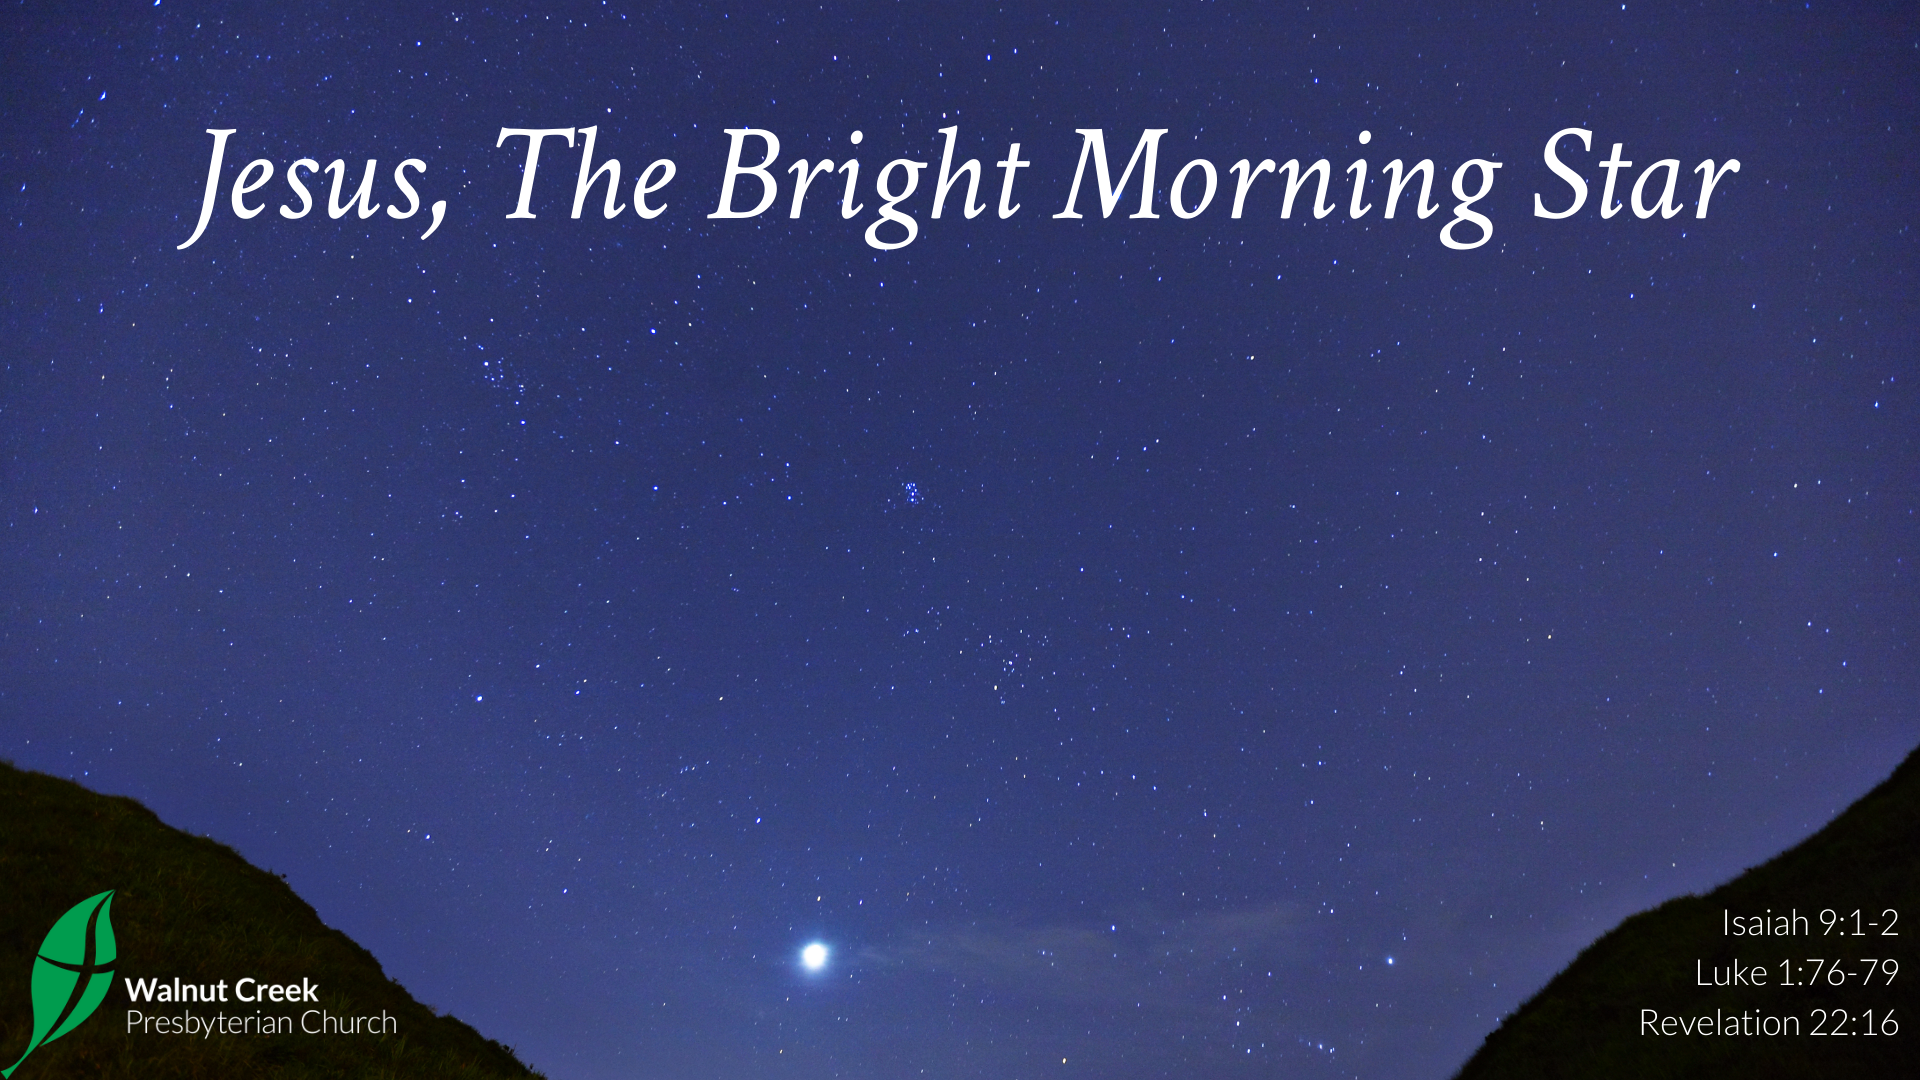 Jesus, The Bright Morning Star